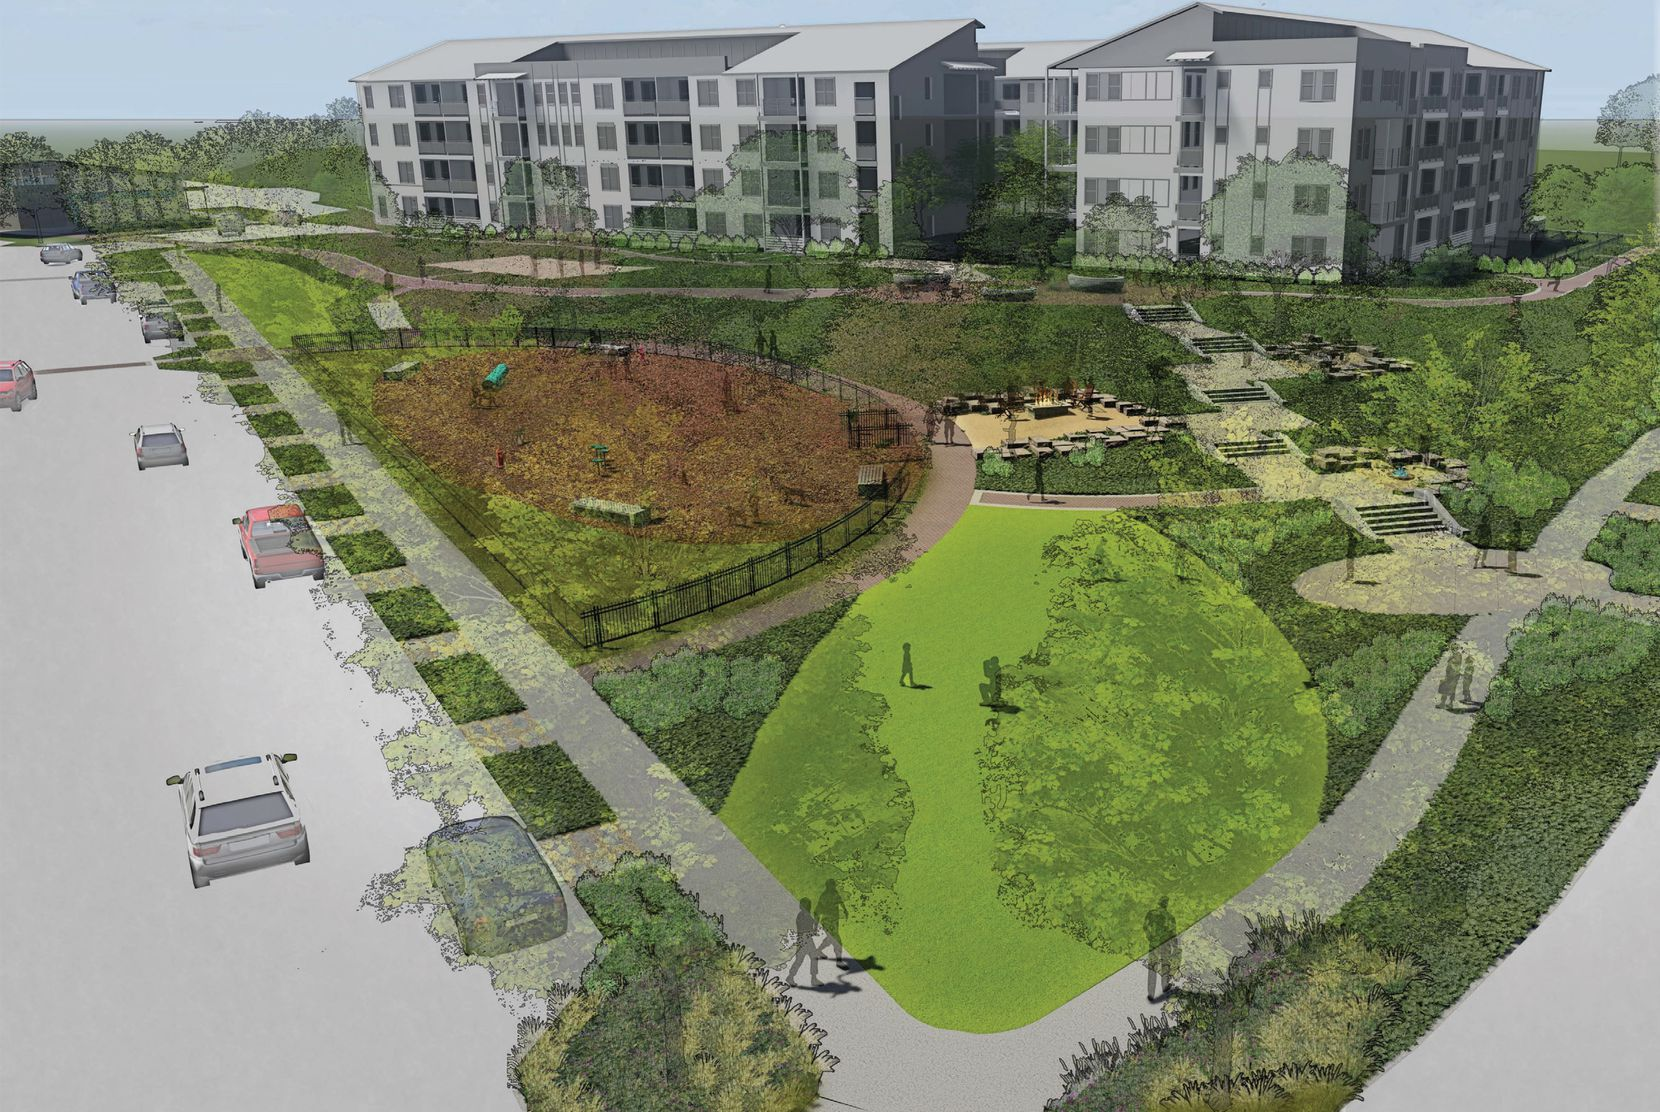 Bright Realty has broken ground on a second phase of its Discovery at The Realm apartments in Lewisville.